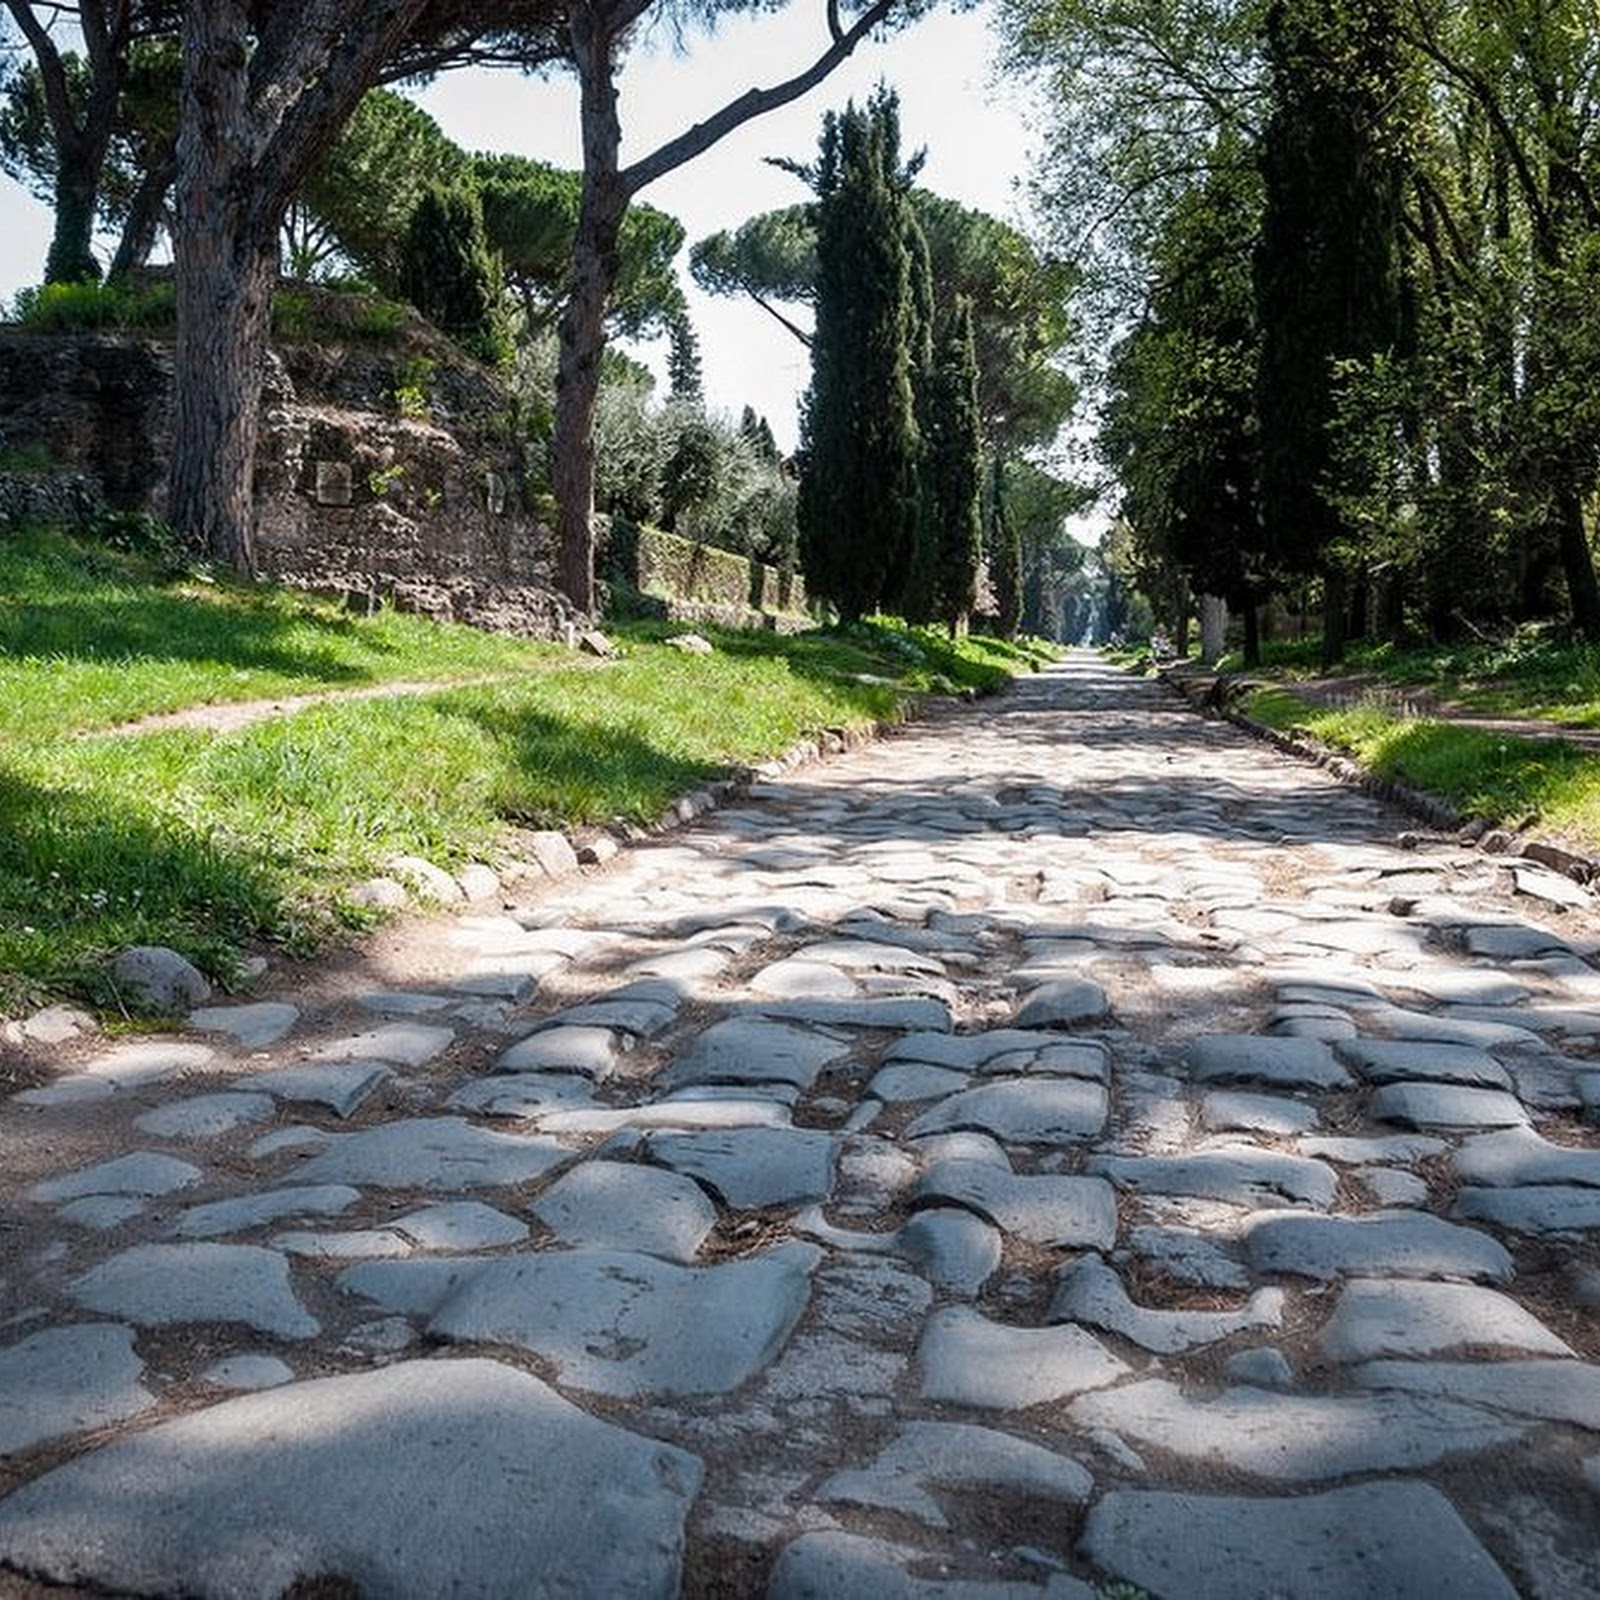 Appian Way, The First Roman Road